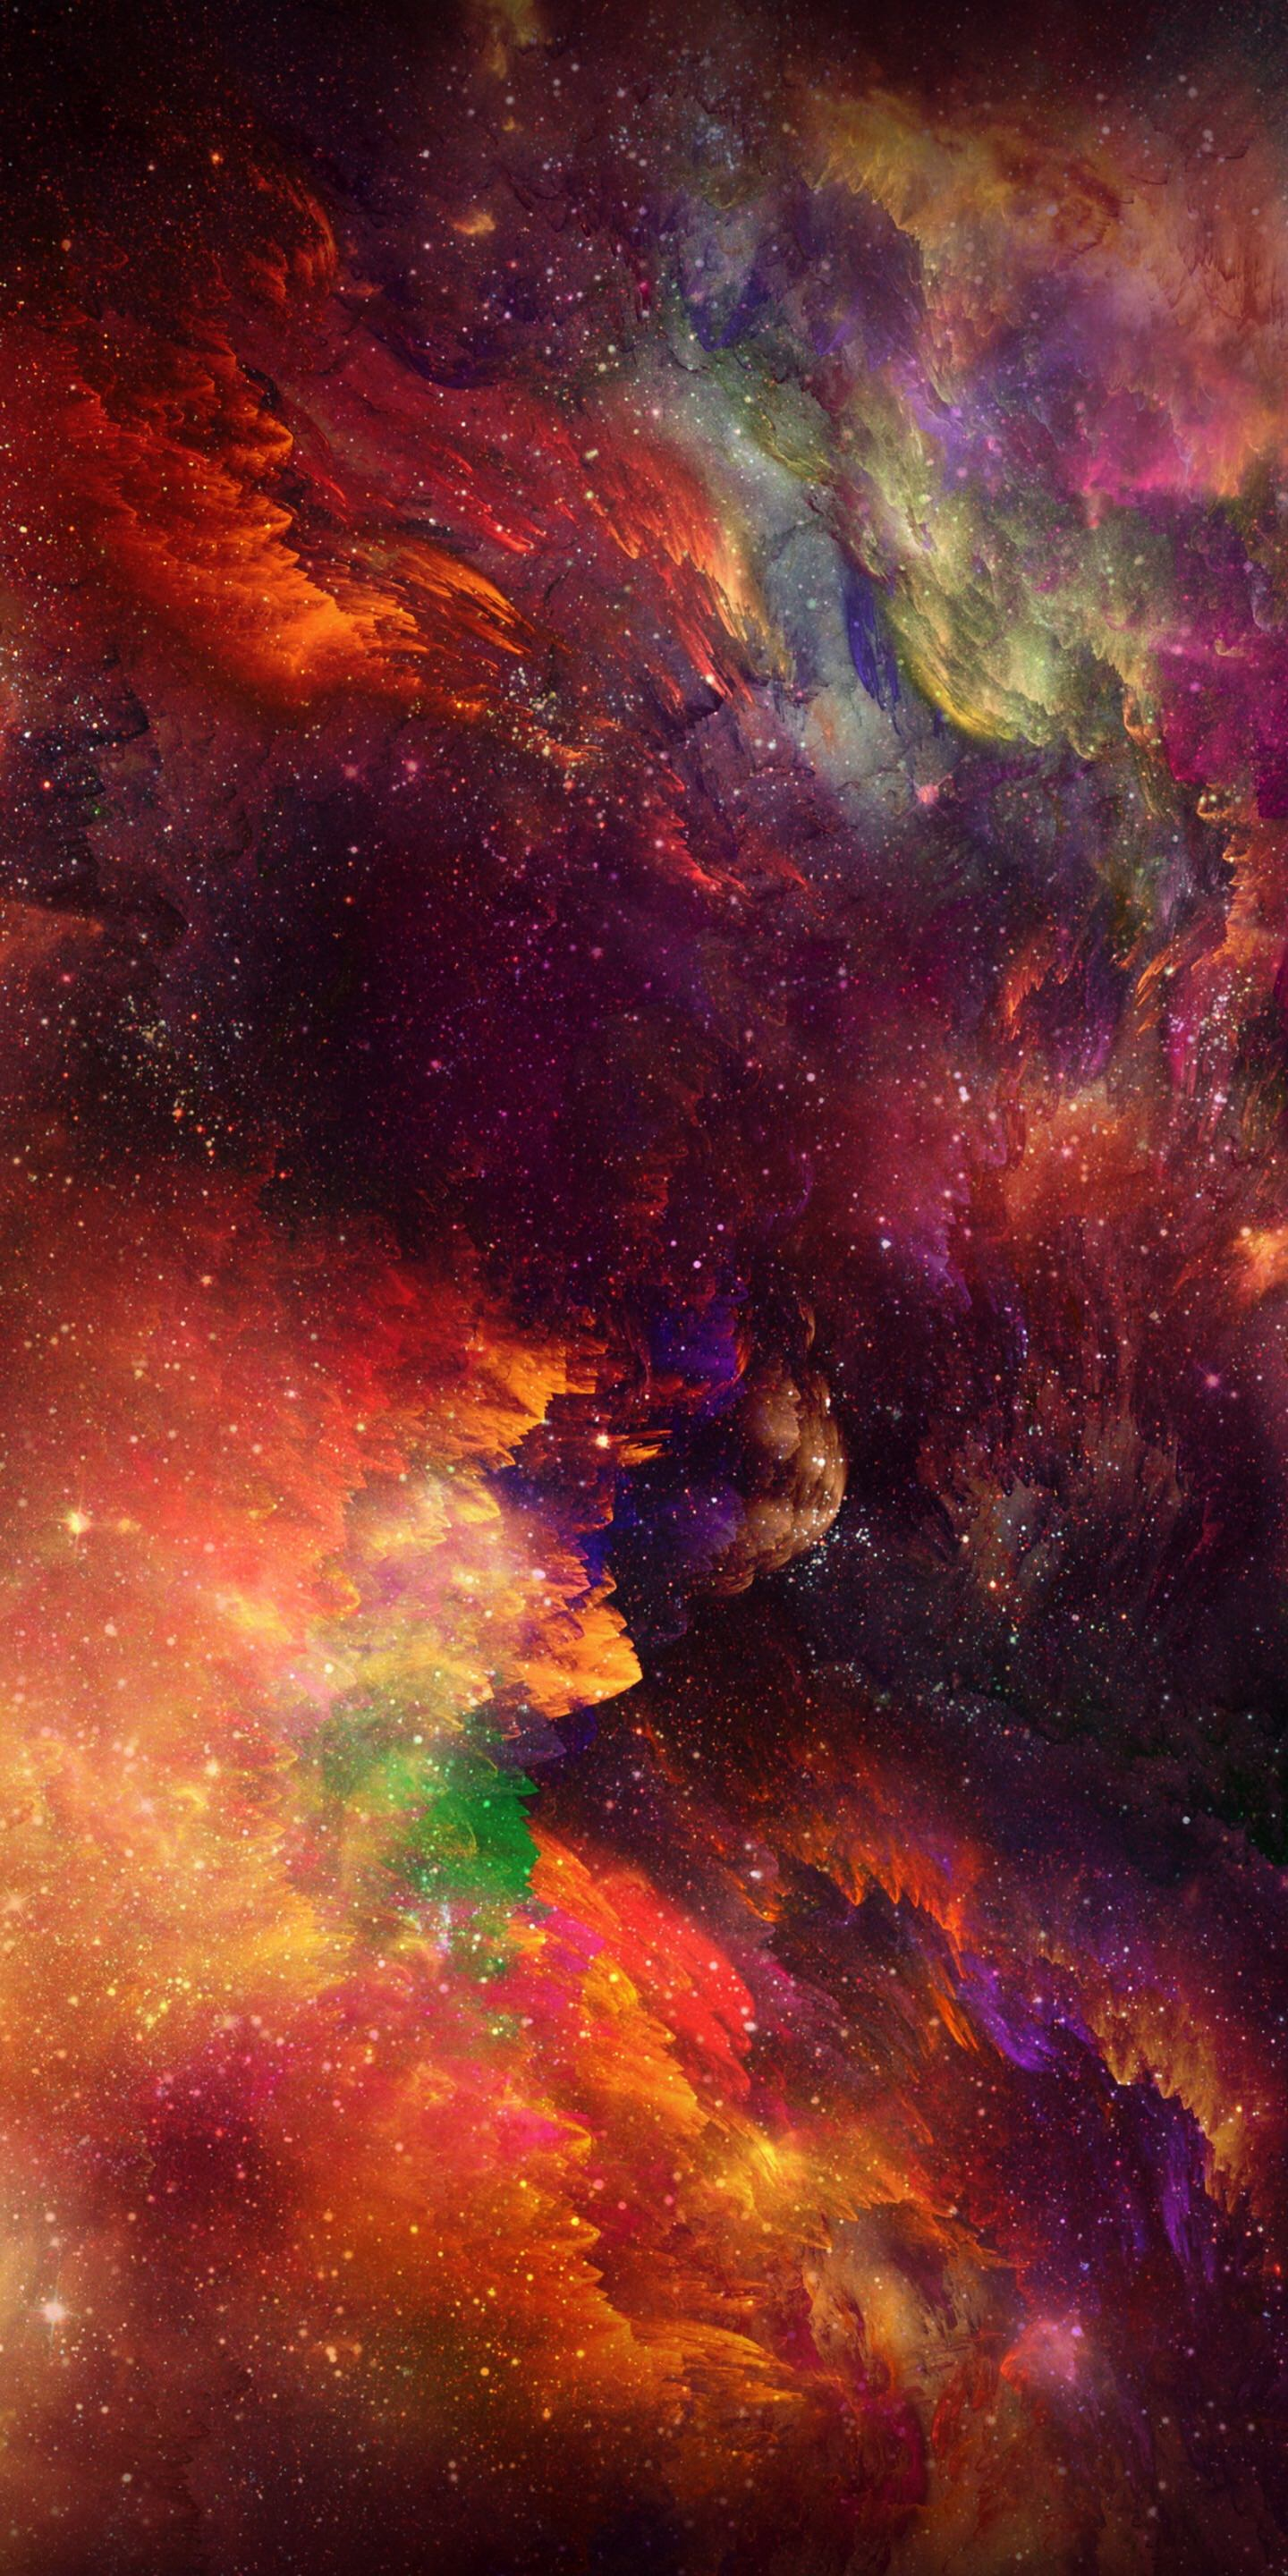 Iphone X Wallpaper Space Wallpaper Download High Resolution 4k Wallpaper